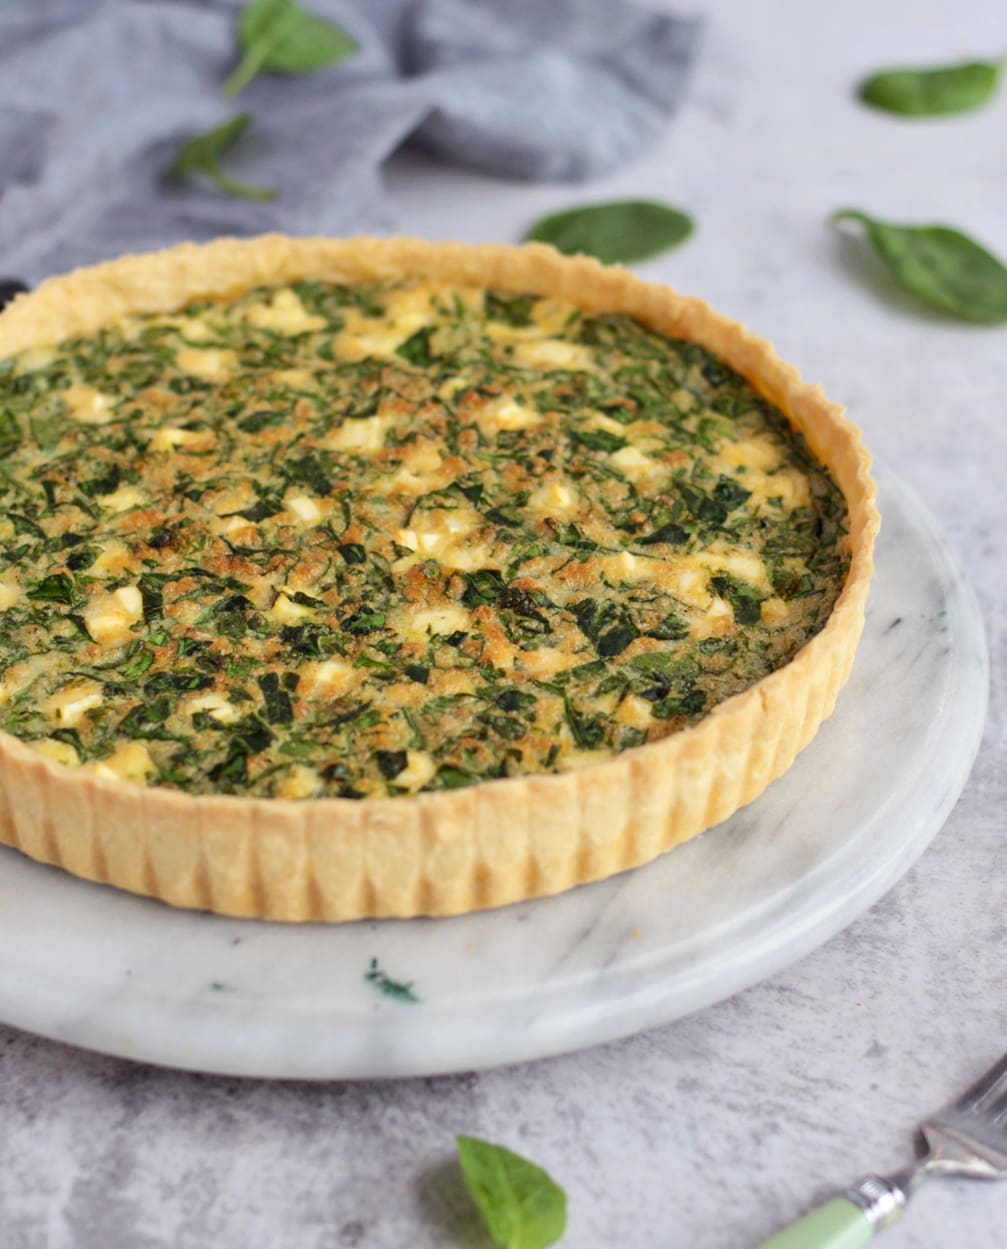 Spinach Quiche viewed from the side.